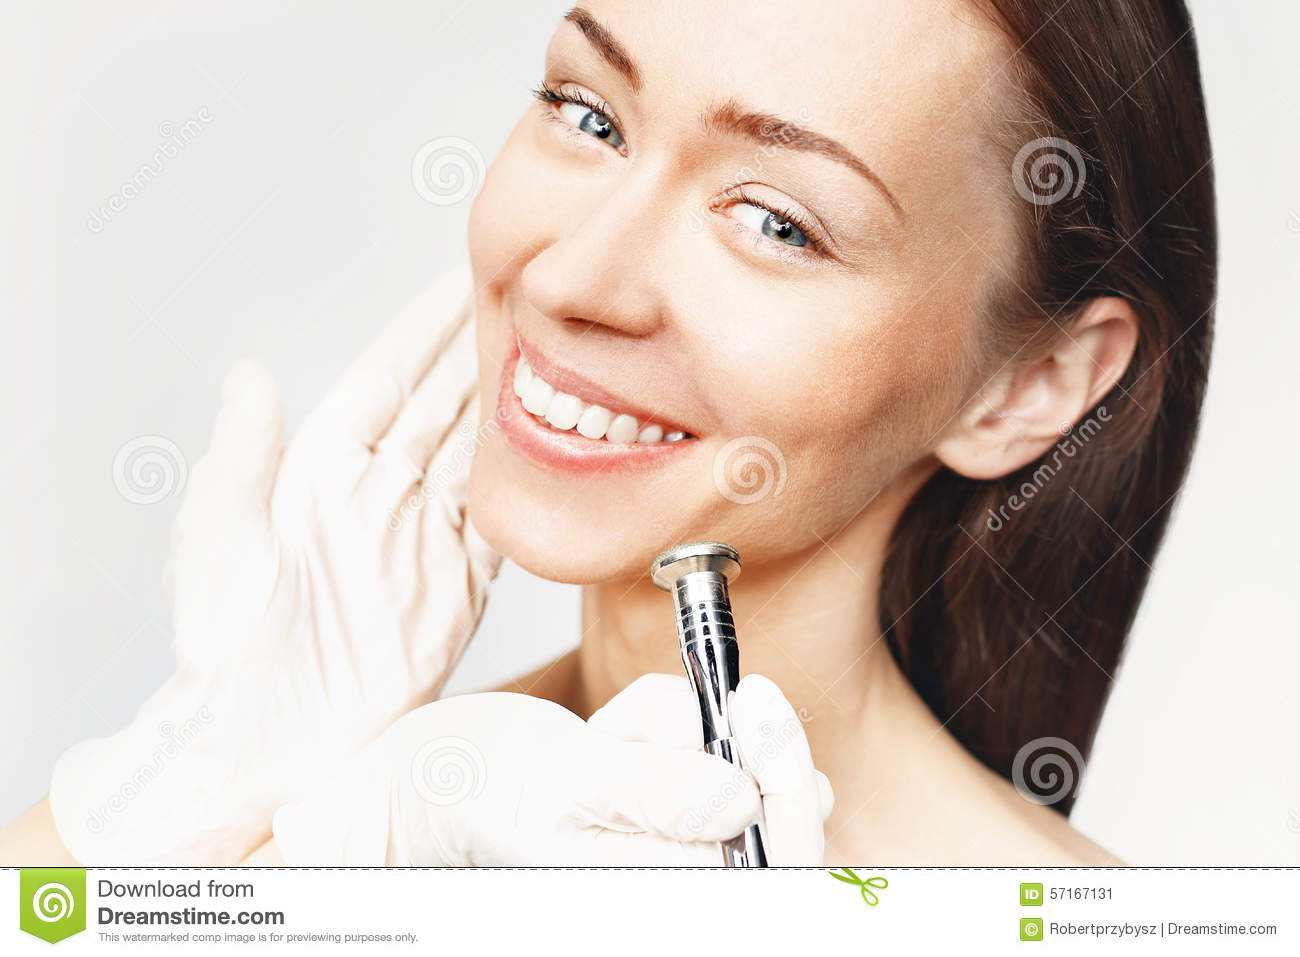 Diamond microdermabrasion stock photo image 57167131 for A trial beauty treatment salon